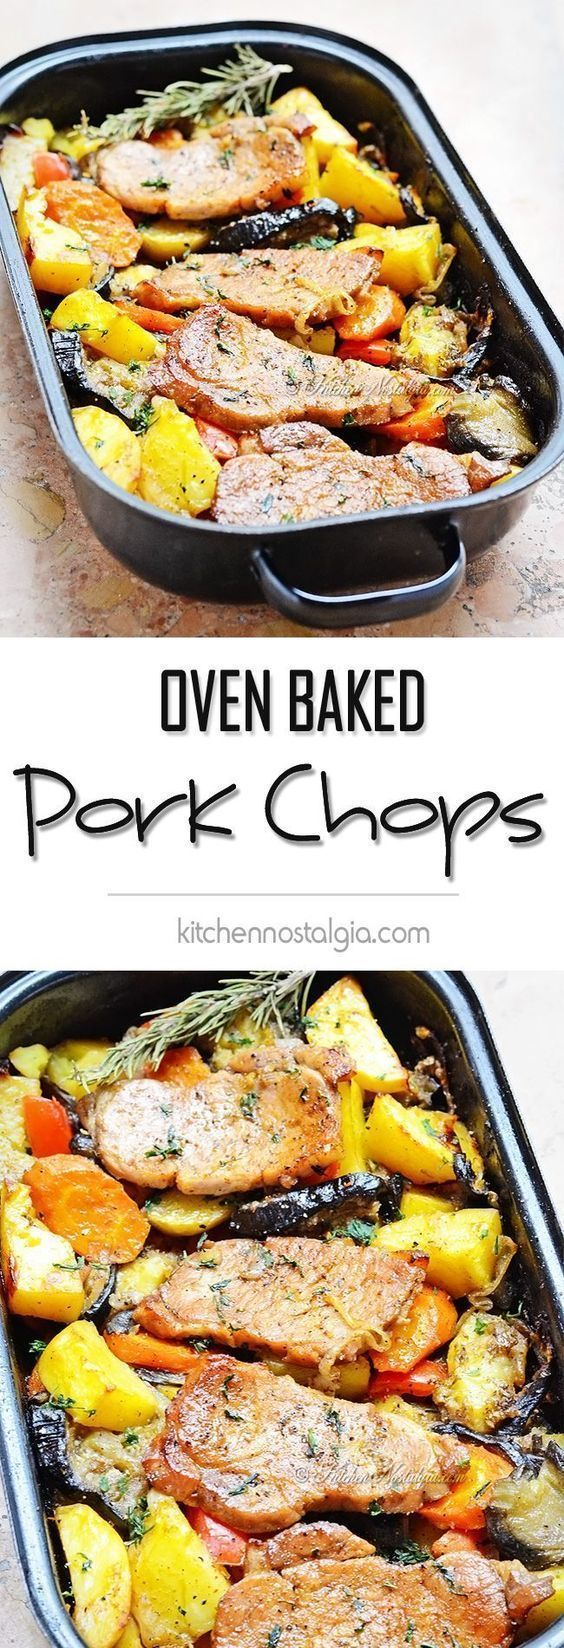 Oven Baked Pork Chops #ovenbakedporkchops Oven Baked Pork Chops - tender and juicy pork chops, brined then baked in the oven with potatoes, vegetables and beer; easy and super delicious #ovenbakedporkchops Oven Baked Pork Chops #ovenbakedporkchops Oven Baked Pork Chops - tender and juicy pork chops, brined then baked in the oven with potatoes, vegetables and beer; easy and super delicious #ovenbakedporkchops Oven Baked Pork Chops #ovenbakedporkchops Oven Baked Pork Chops - tender and juicy pork #ovenbakedporkchops